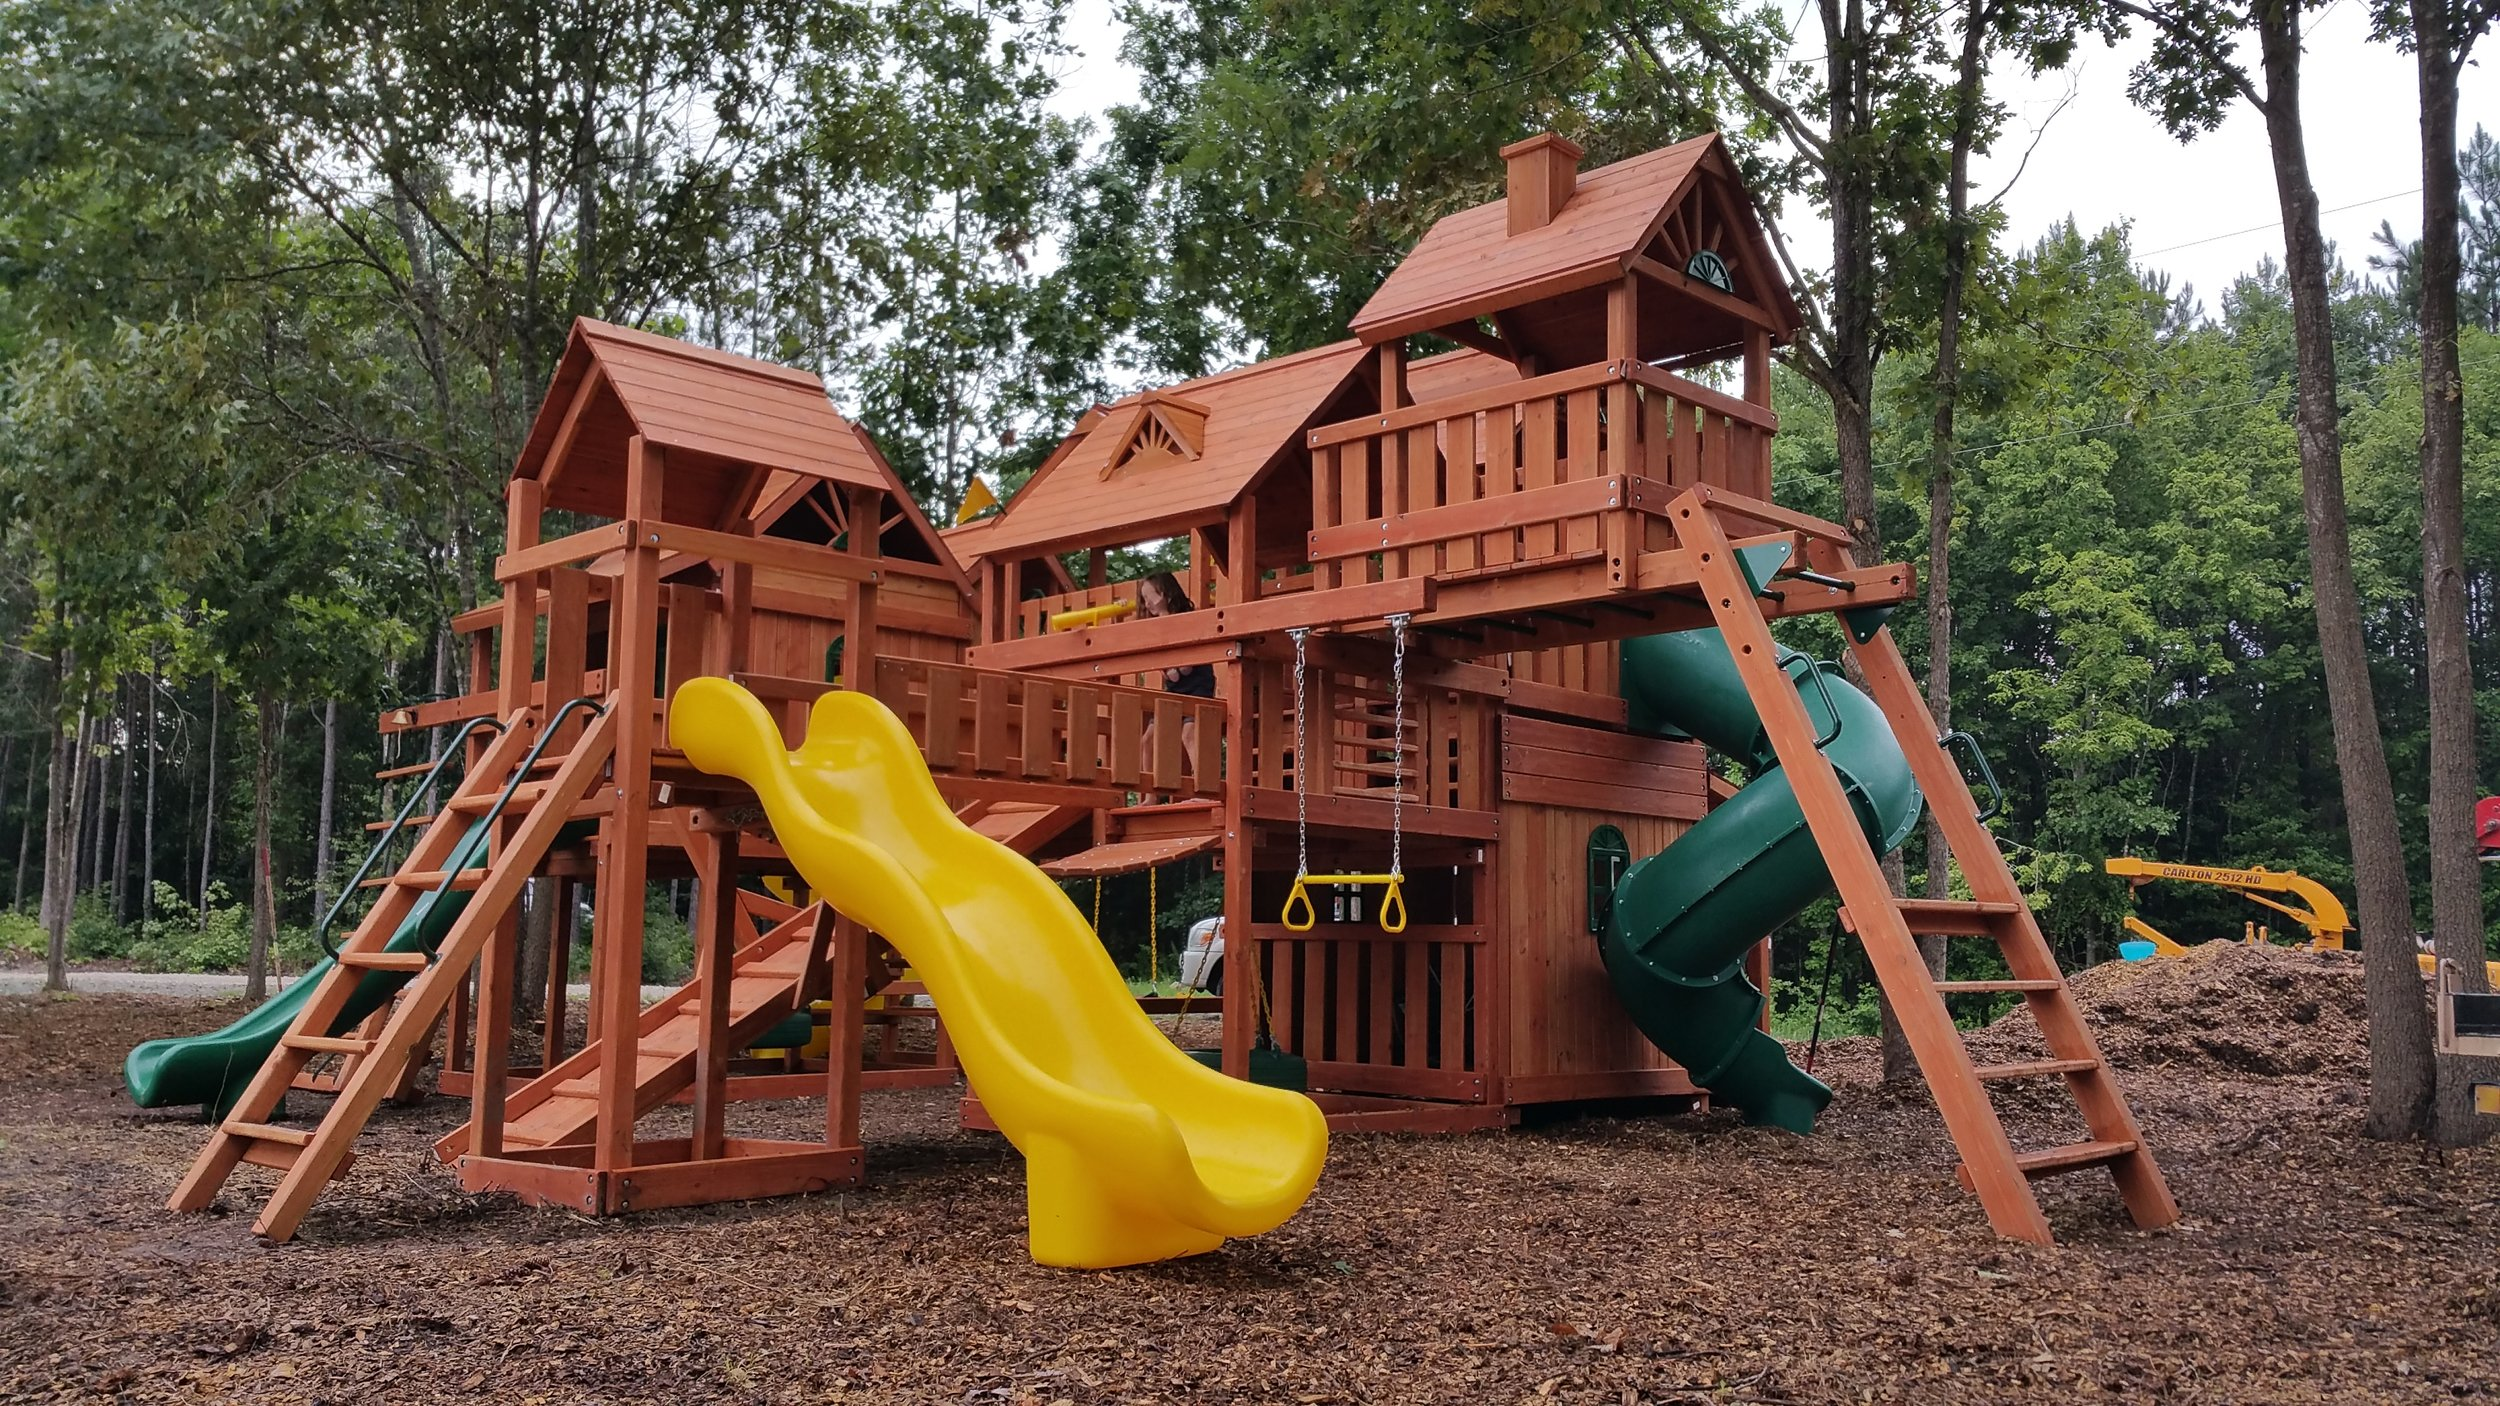 The Pangea. Confirmed as one of the biggest residential wooden swing sets east of the Mississippi.